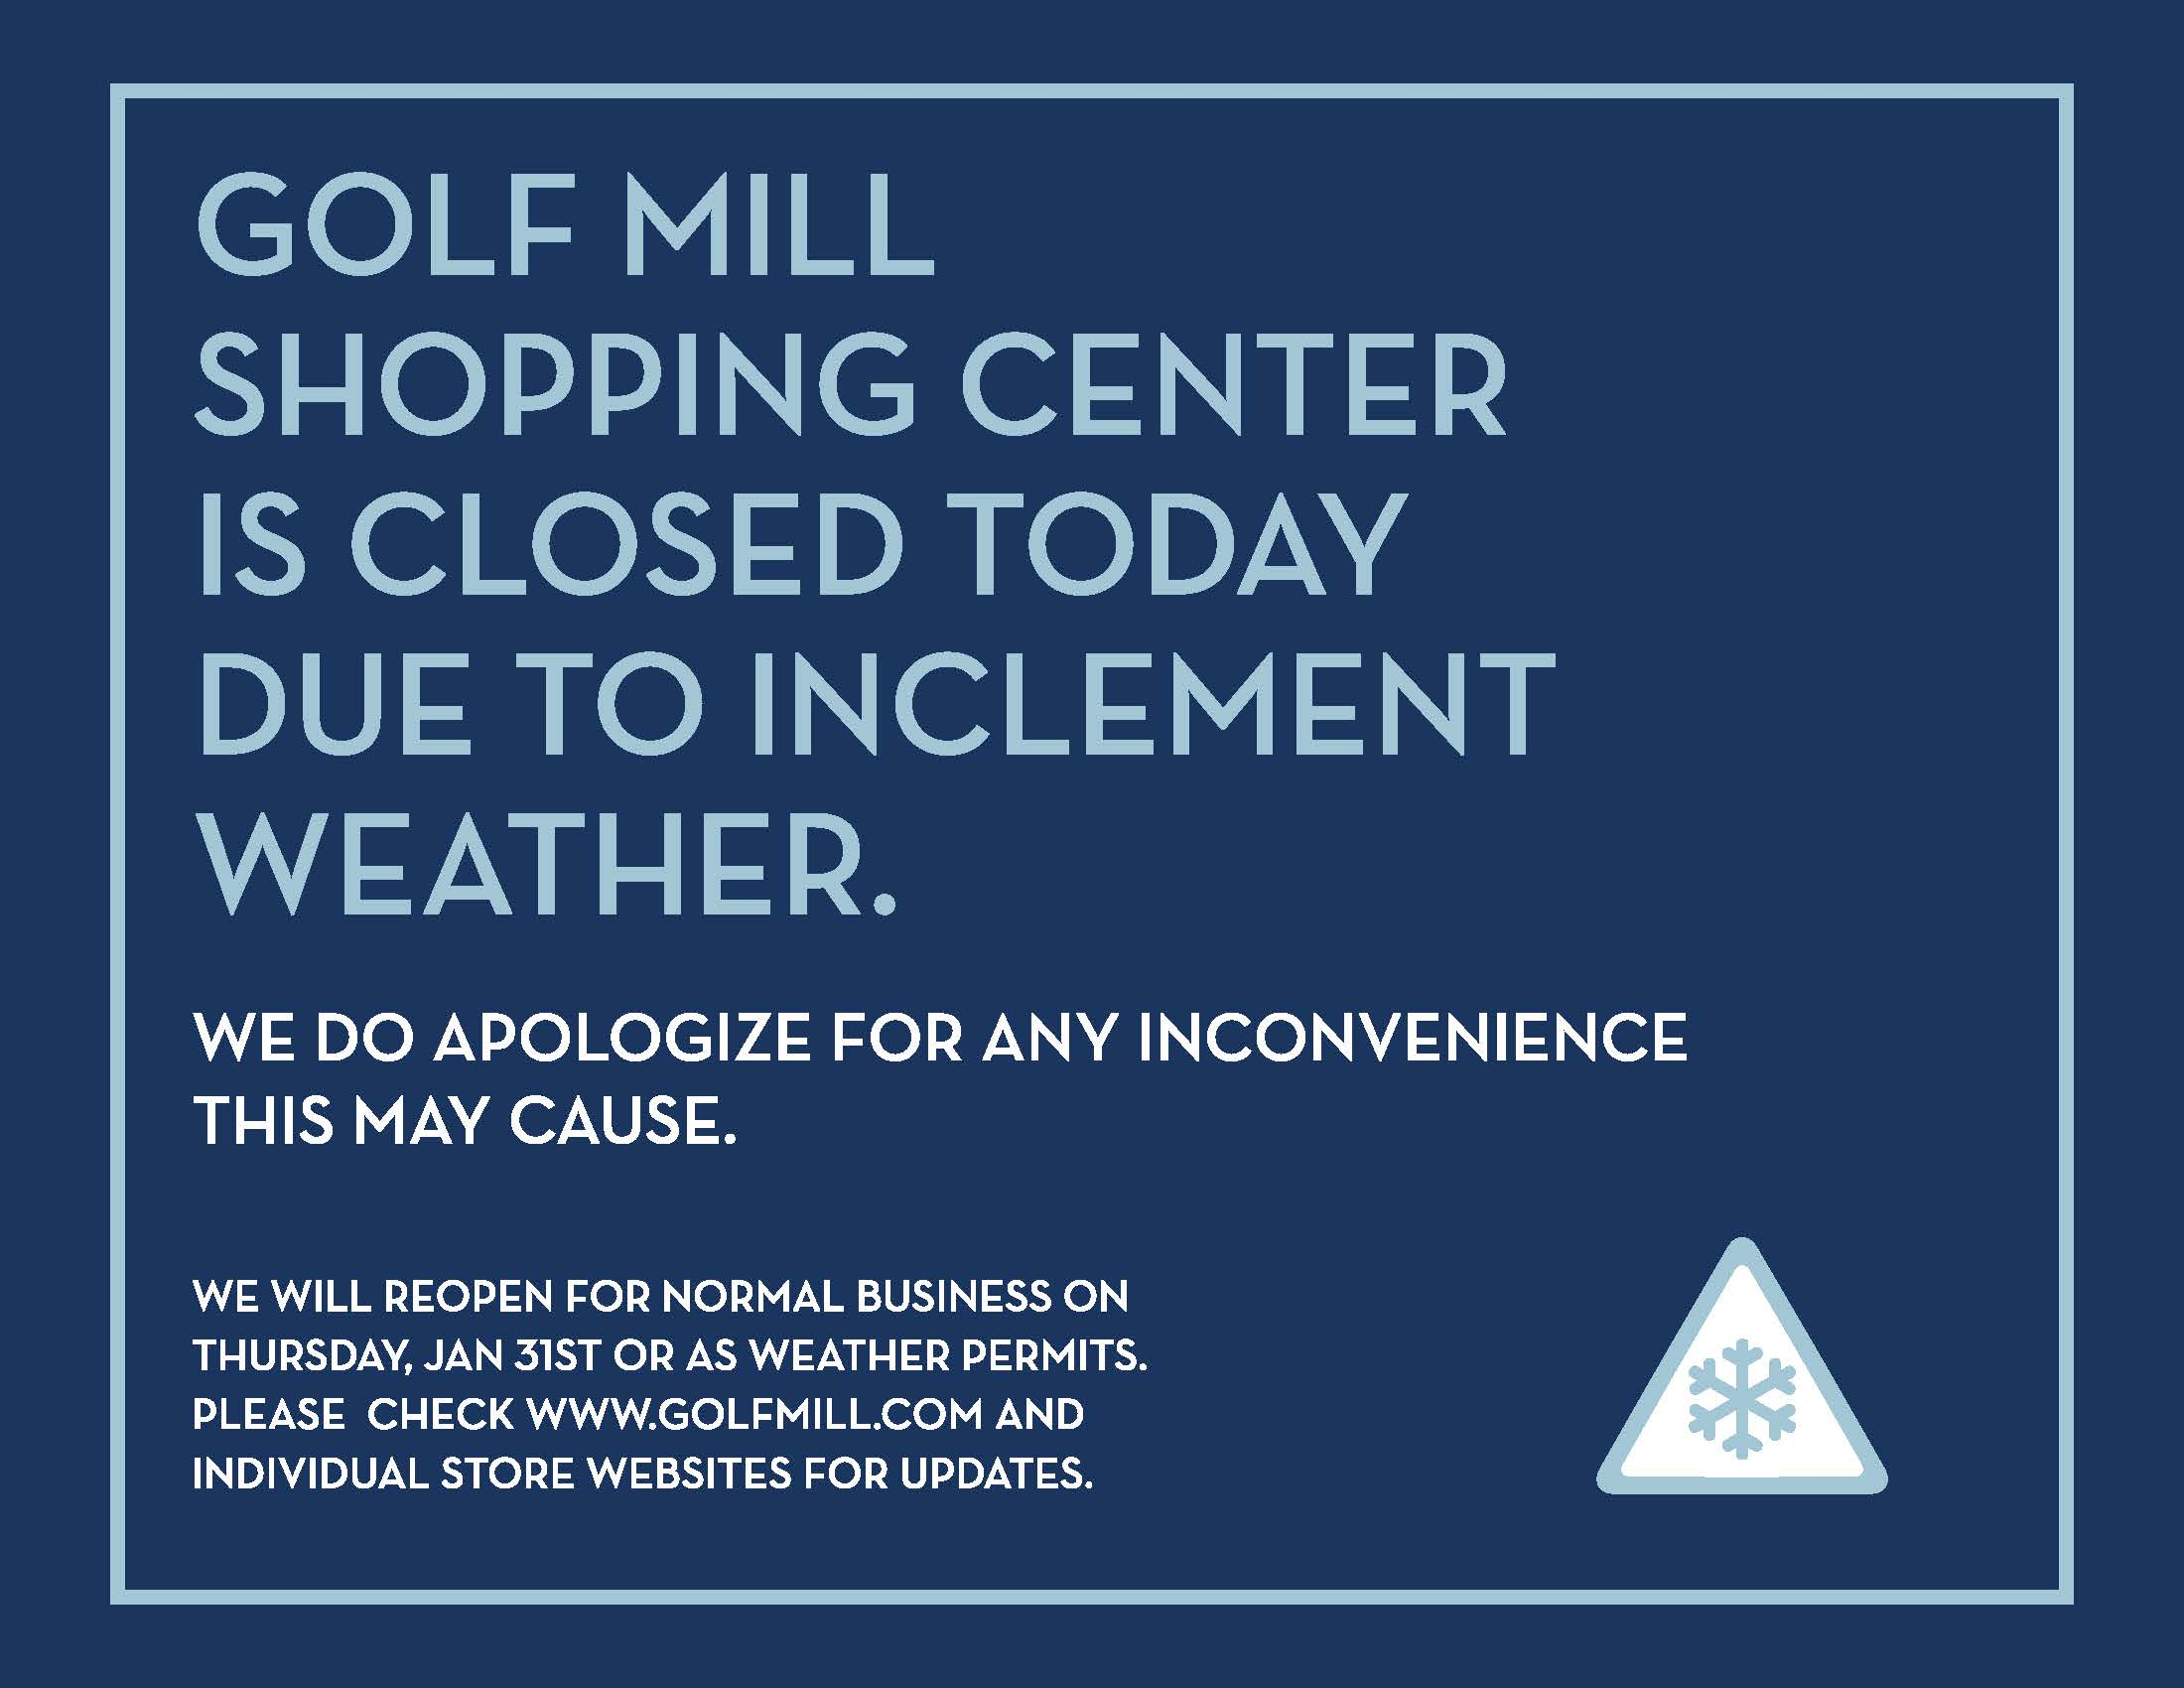 Golf Mill Shopping Center will be closed Wednesday, January 30